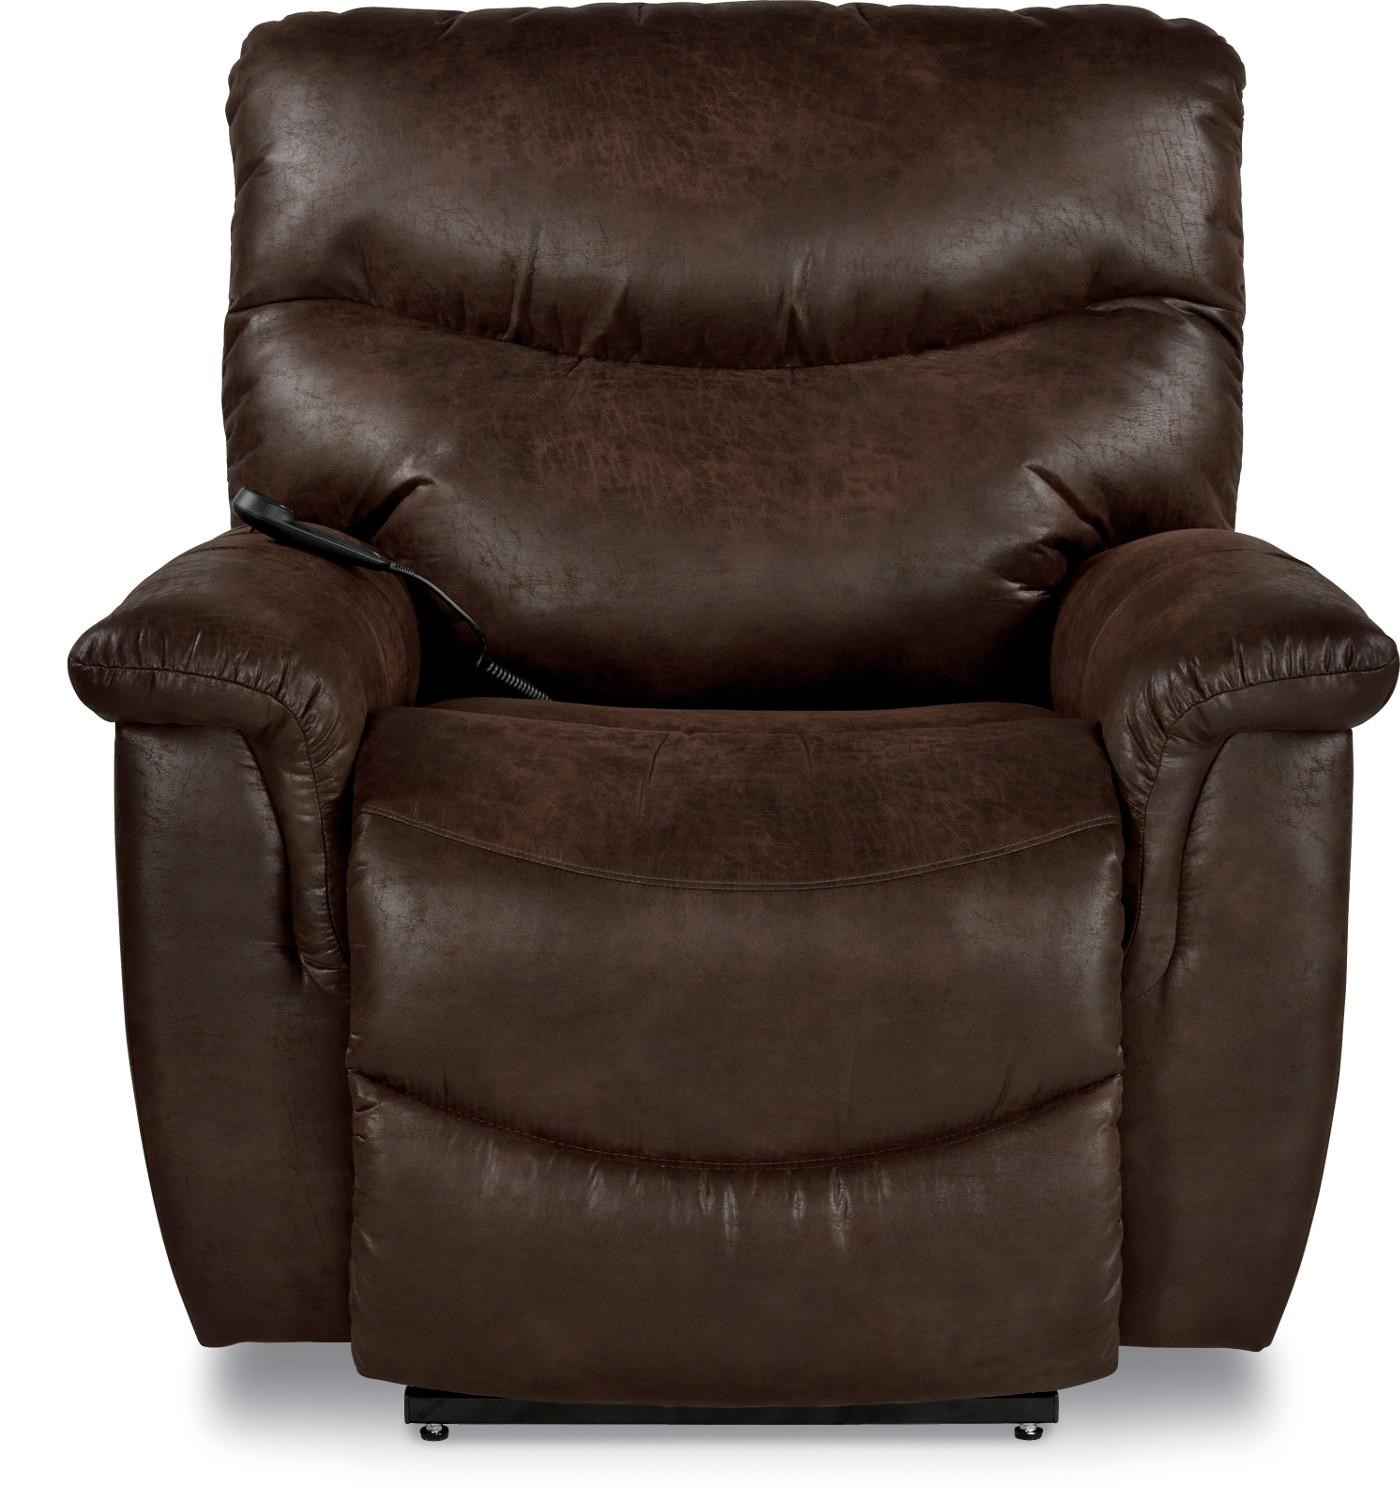 La-Z-Boy JamesSilver Luxury Lift?  sc 1 st  Adcock Furniture & La-Z-Boy James Casual Silver Luxury Lift? Power Recliner | Adcock ...